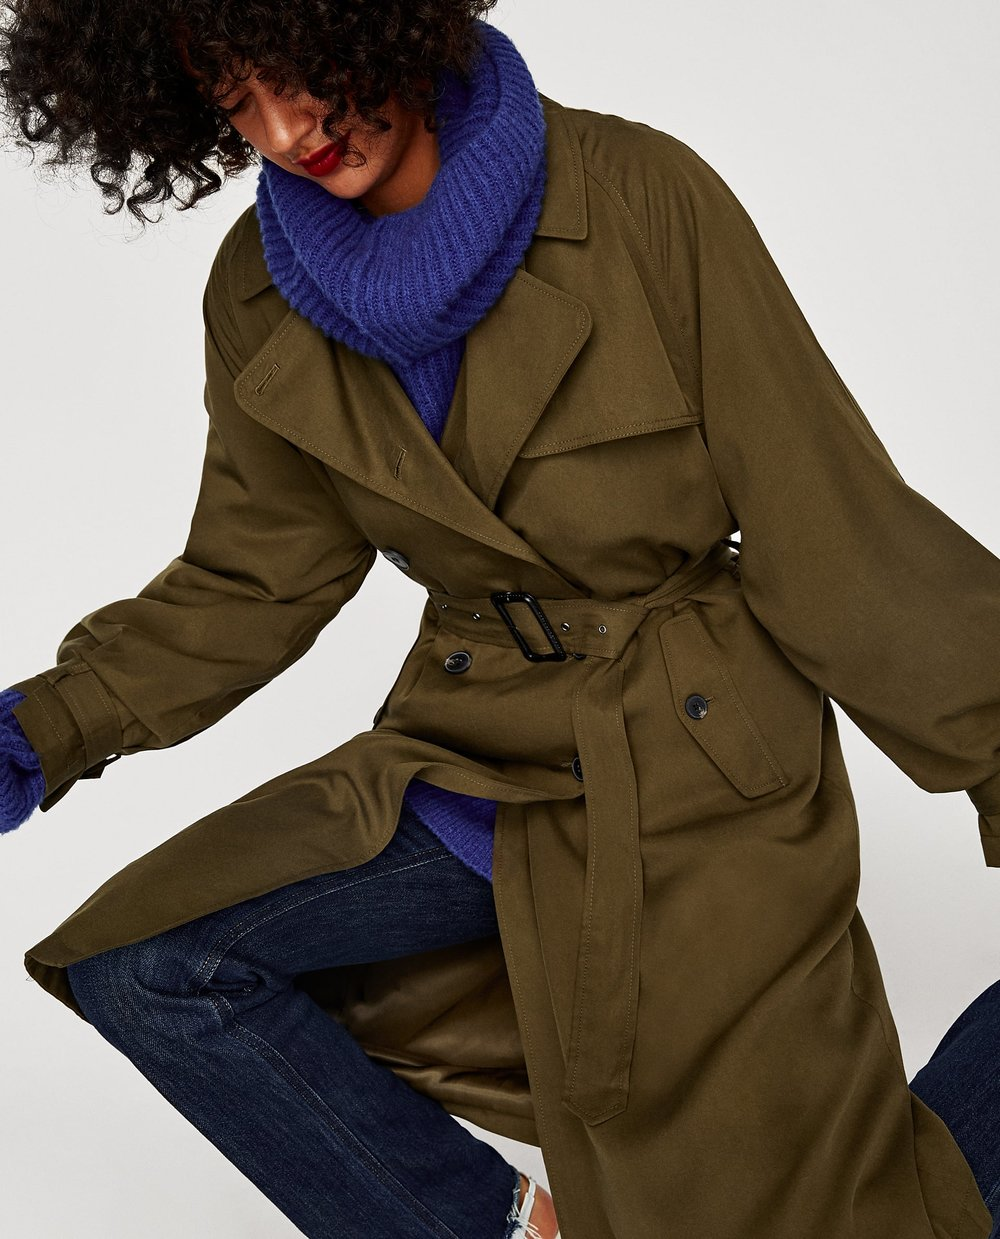 - LOOSE FIT TRENCH COAT IN DARK KHAKI / SALE PRICE $80